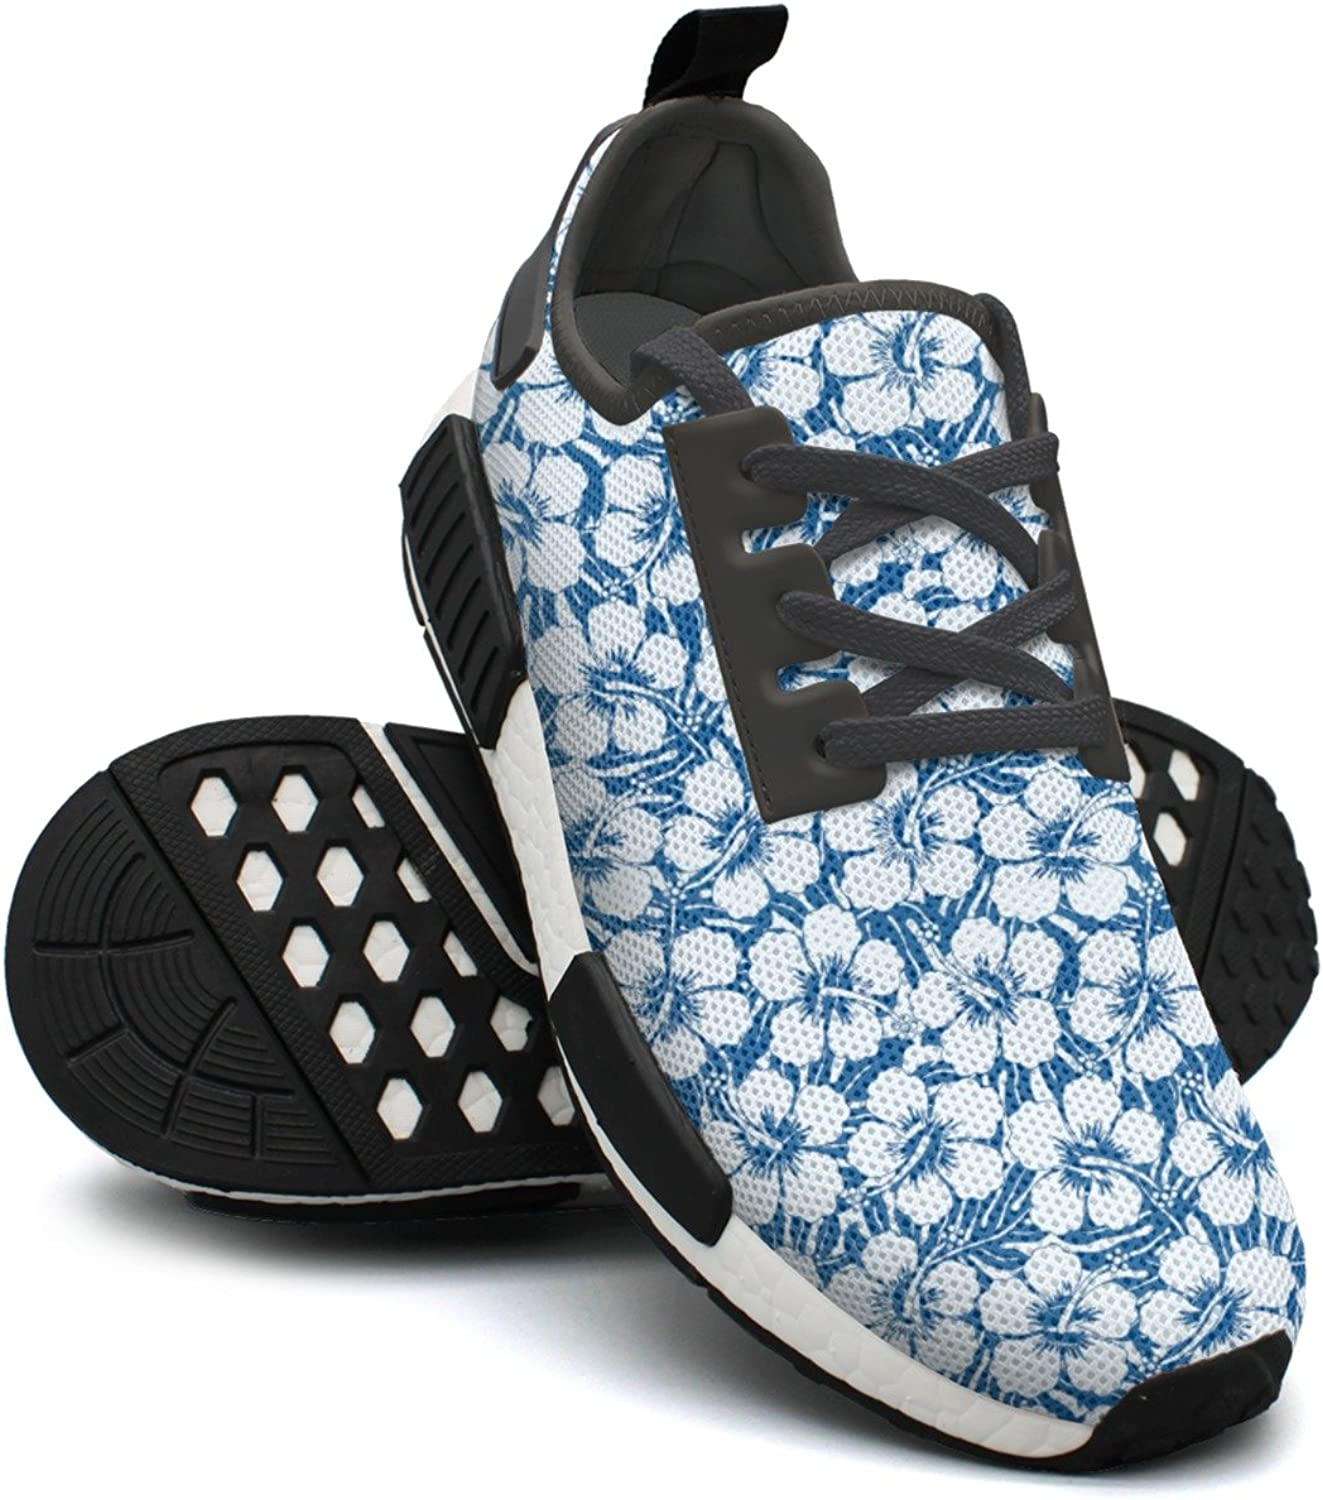 Graphic Navy And White Tropical Flowers Printed Lace-up Running shoes Nmd Sport Casual shoes